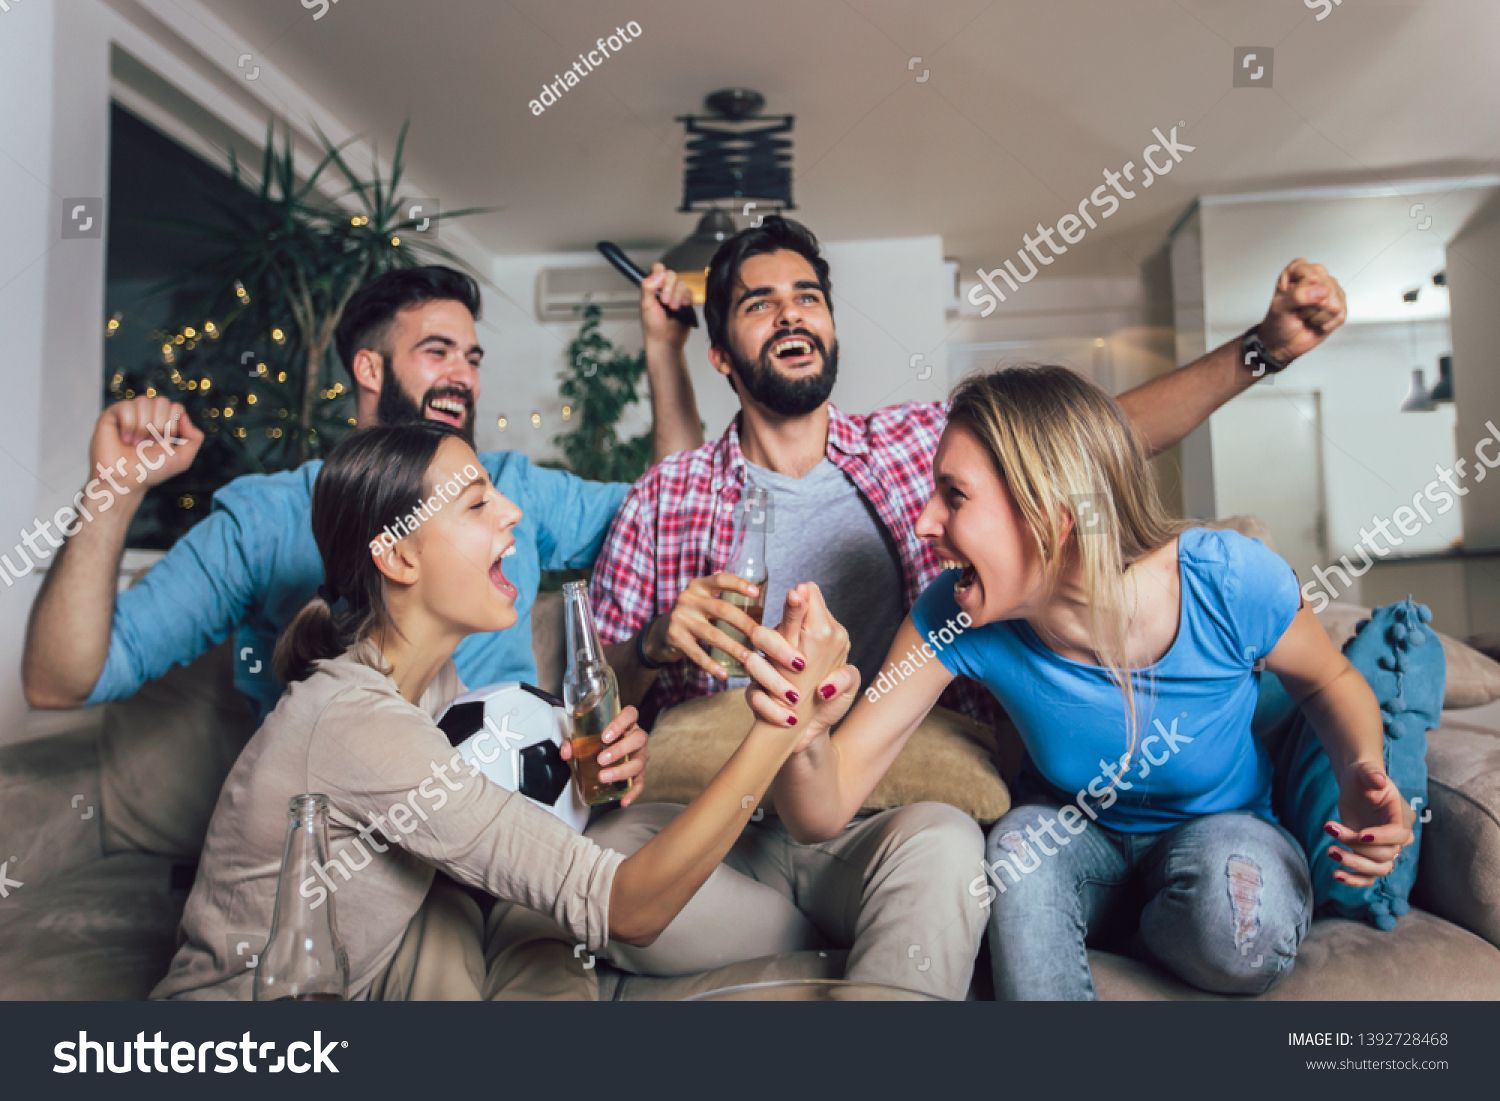 Happy Friends Or Football Fans Watching Soccer On Tv And Celebrating Victory At Home Friendship Sports And Entertainment Football Fans Happy Friends Soccer Tv